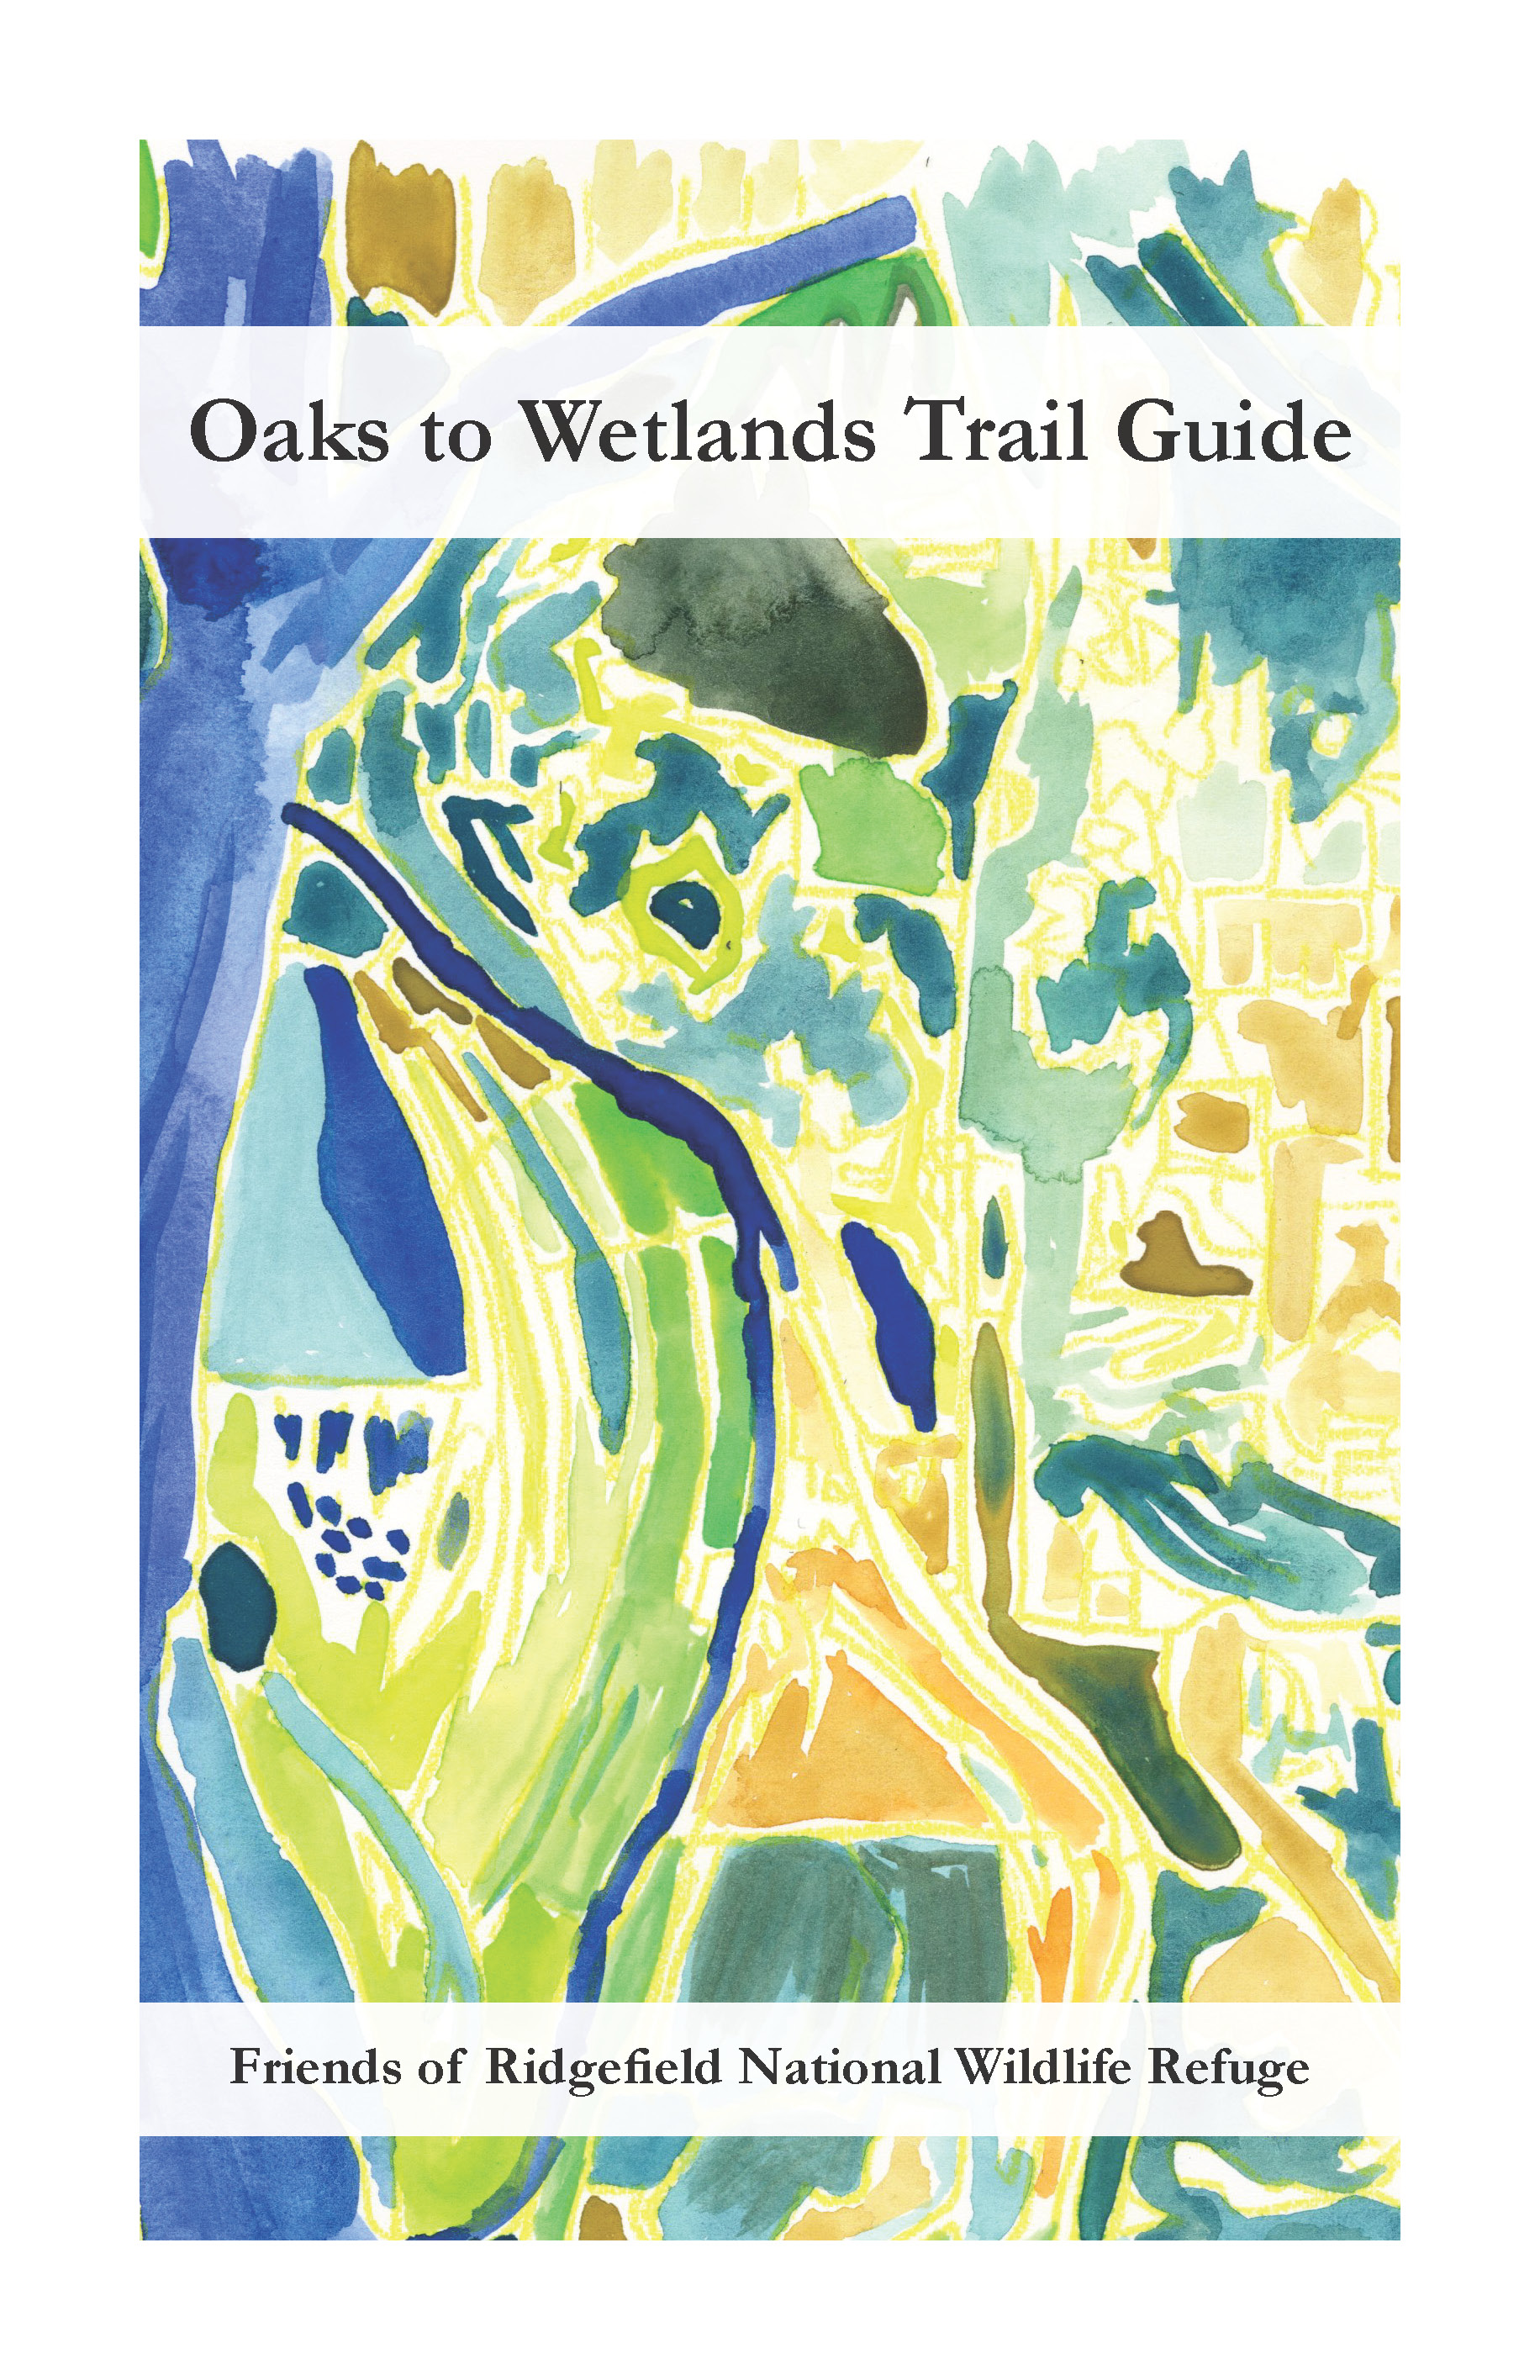 """""""Oaks to Wetlands Trail Guide Cover"""" 2015 - 2016   5.5 x 8.5 inches   Watercolor and Graphic Design   Description: This is a trail guide in its first iteration designed for educators, students, and other stakeholders connected to the wildlife refuge."""